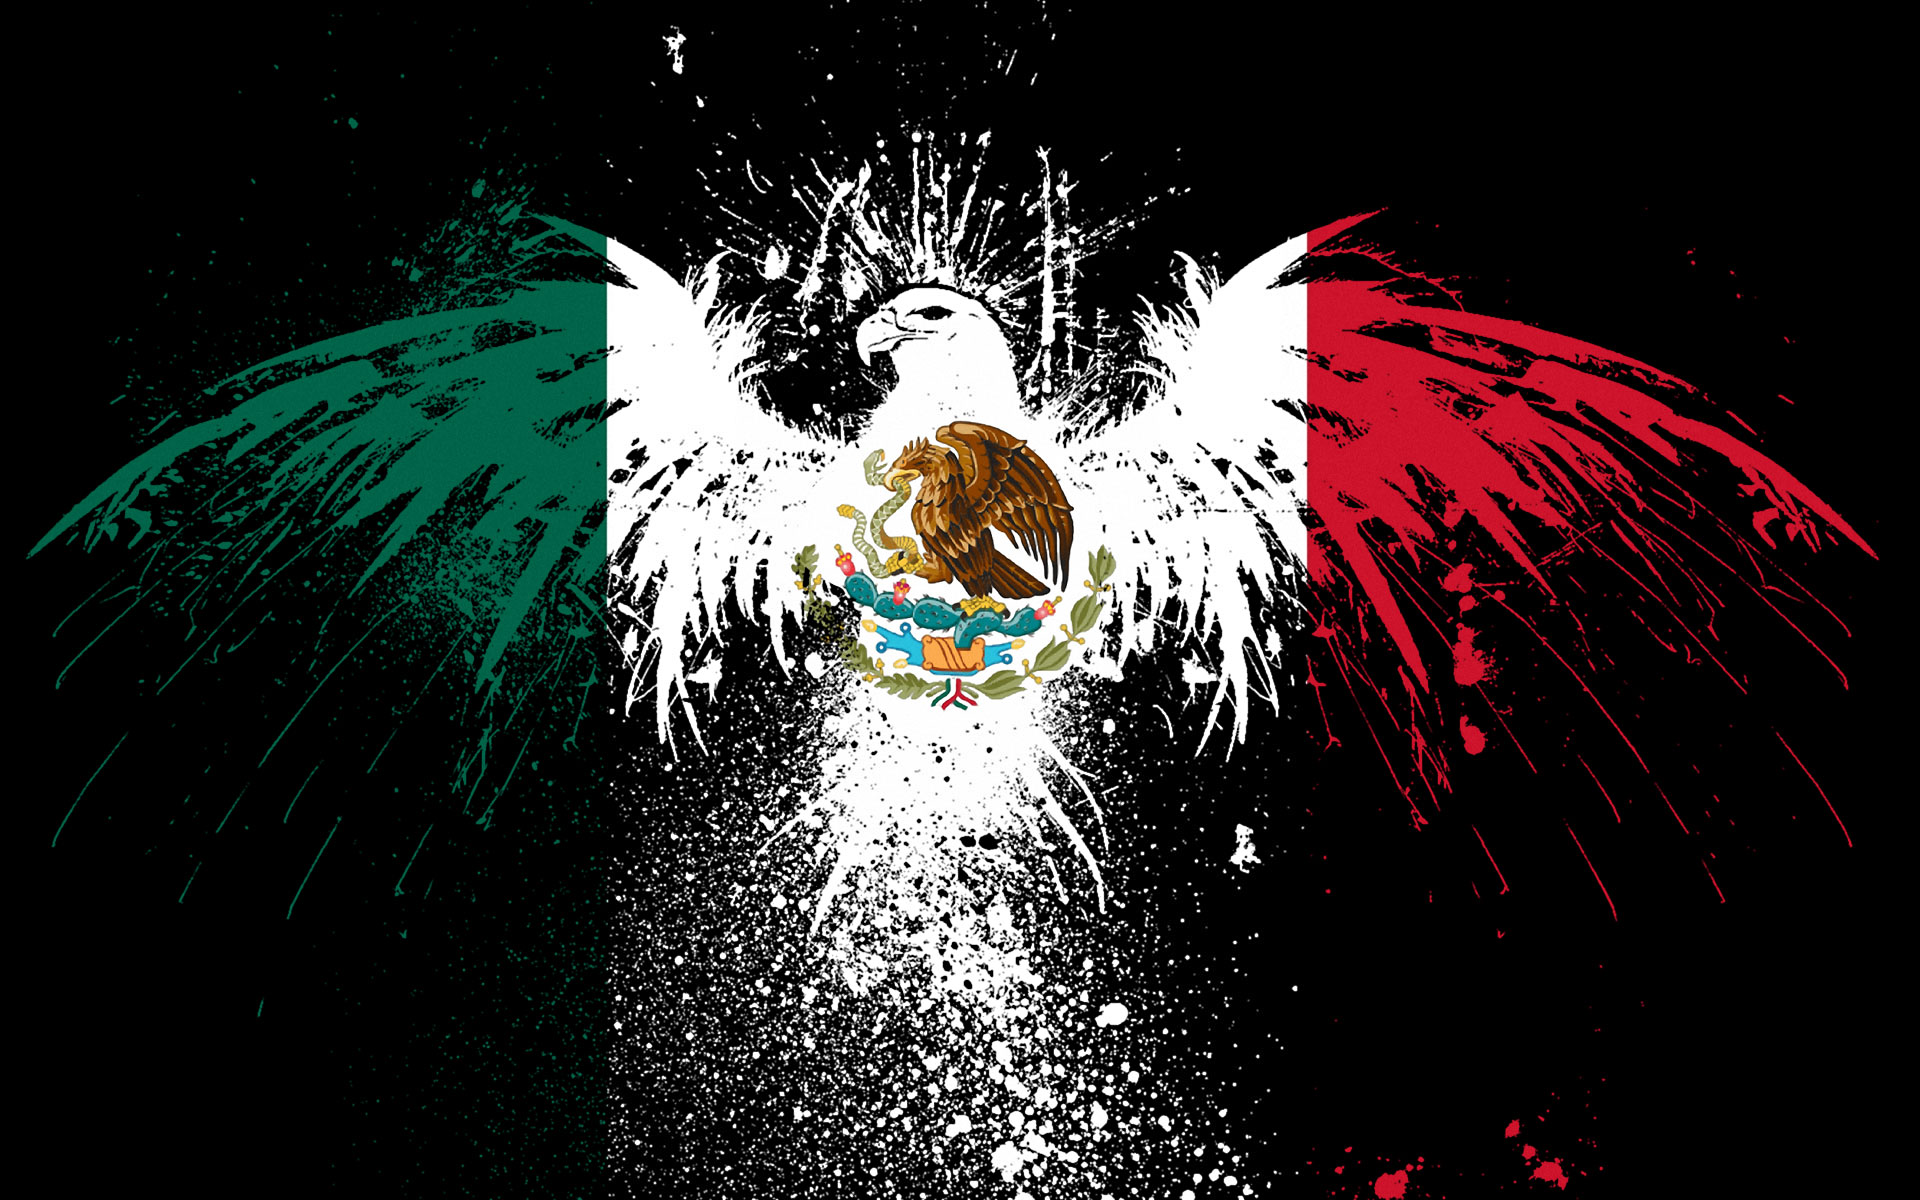 Symbol Wallpaper 1920x1200 Splash Symbol Eagles Flags Mexico 1920x1200